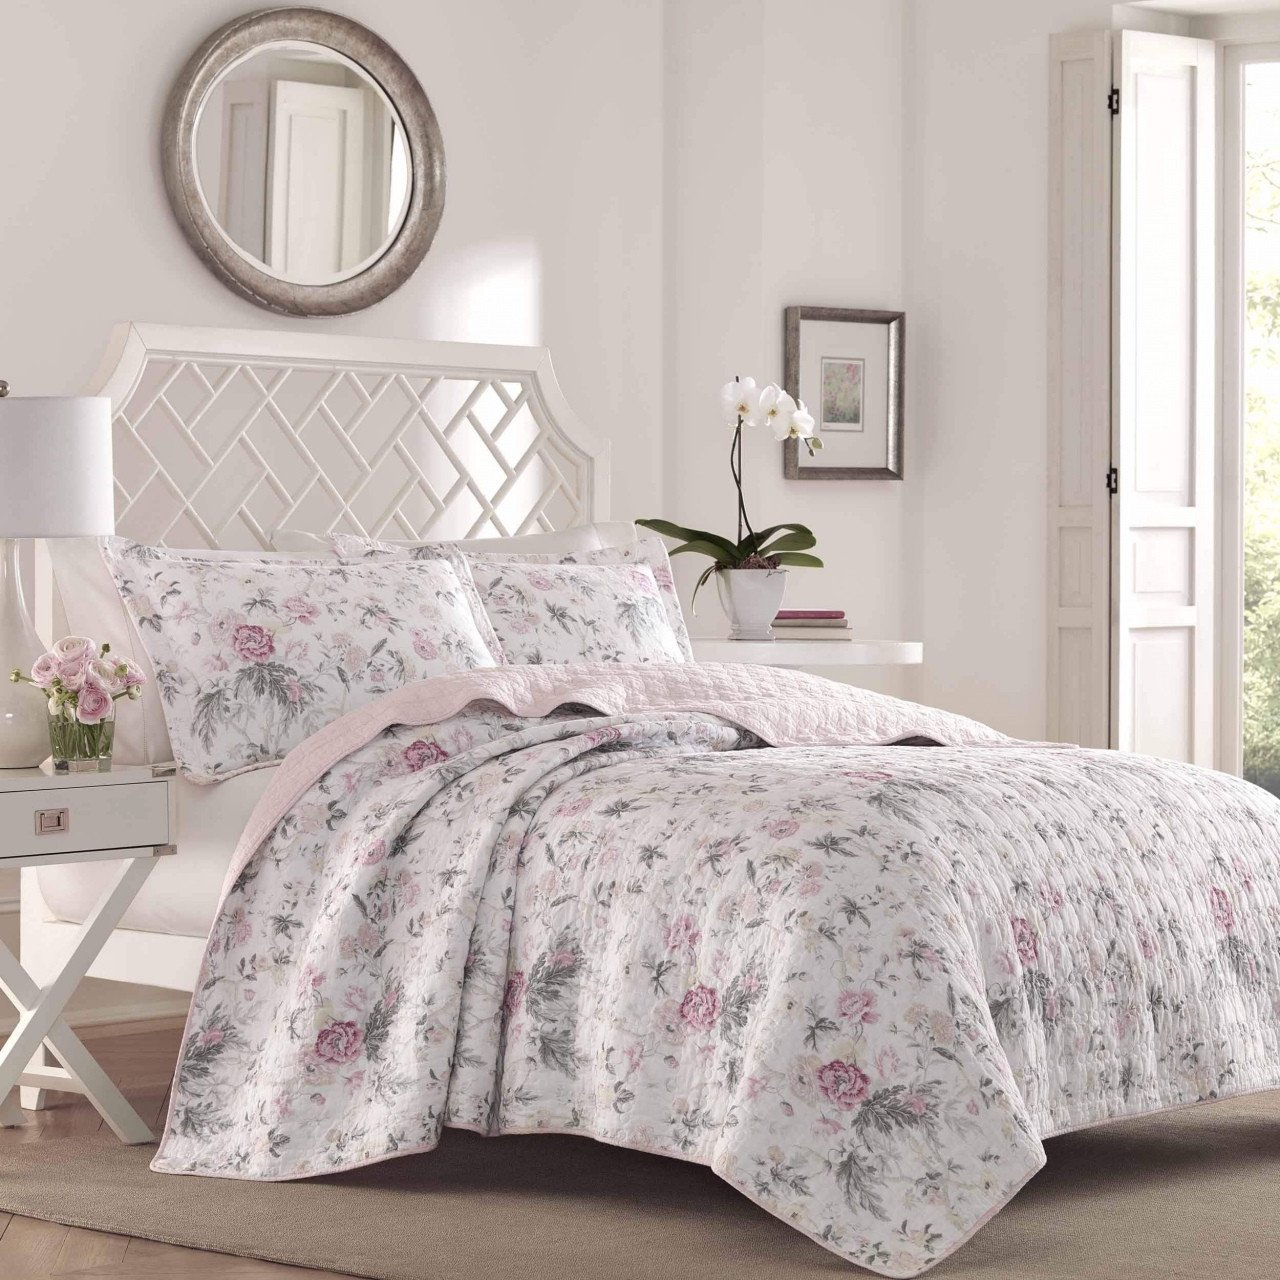 Laura ashley Bedroom Set Fresh Shabby Chic Bedding Sets — Procura Home Blog